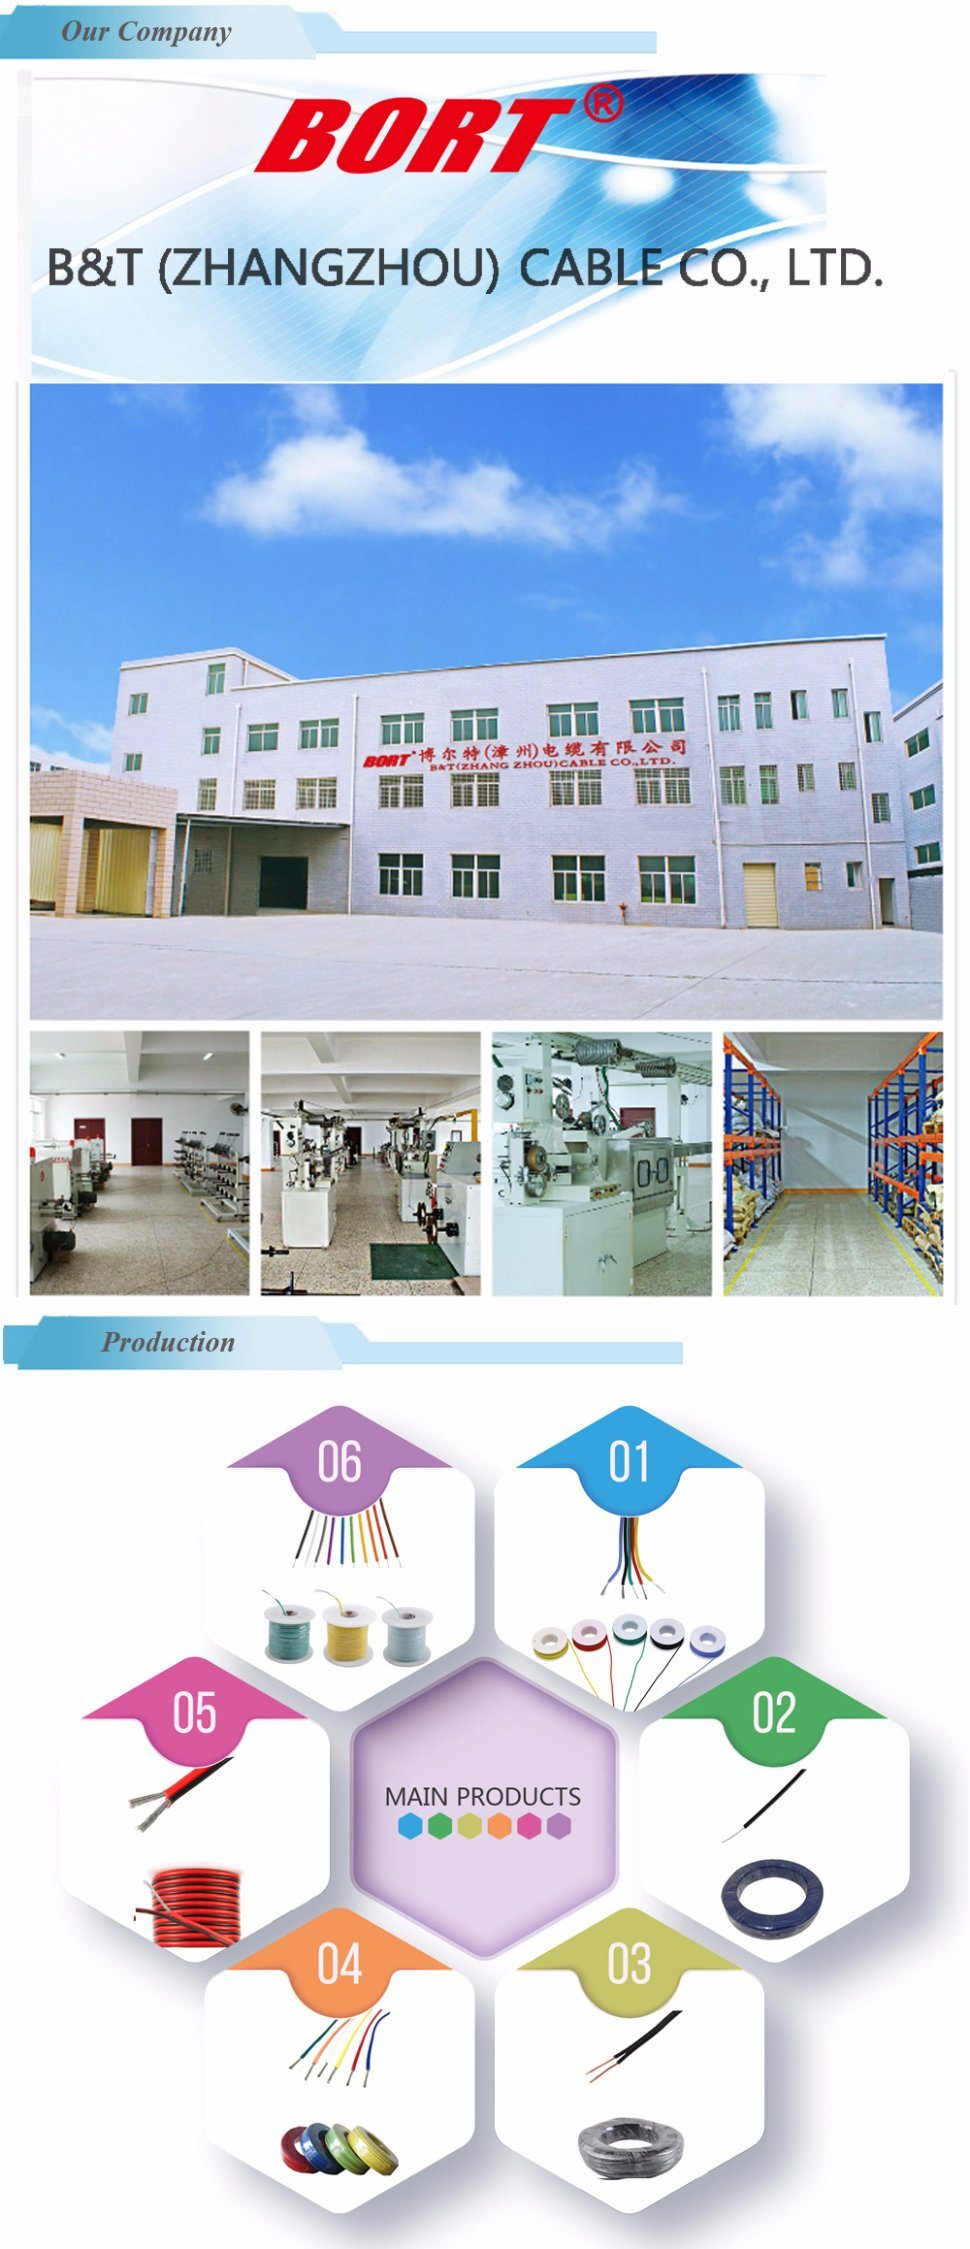 Thhn Nylon Jacket Building Wiring Feeder Ground Wire And Electrical A1 We Can Provide The Existing Items Samples Free In Freight Collected If There Is Any Special Requirement Please Contact Us For More Details